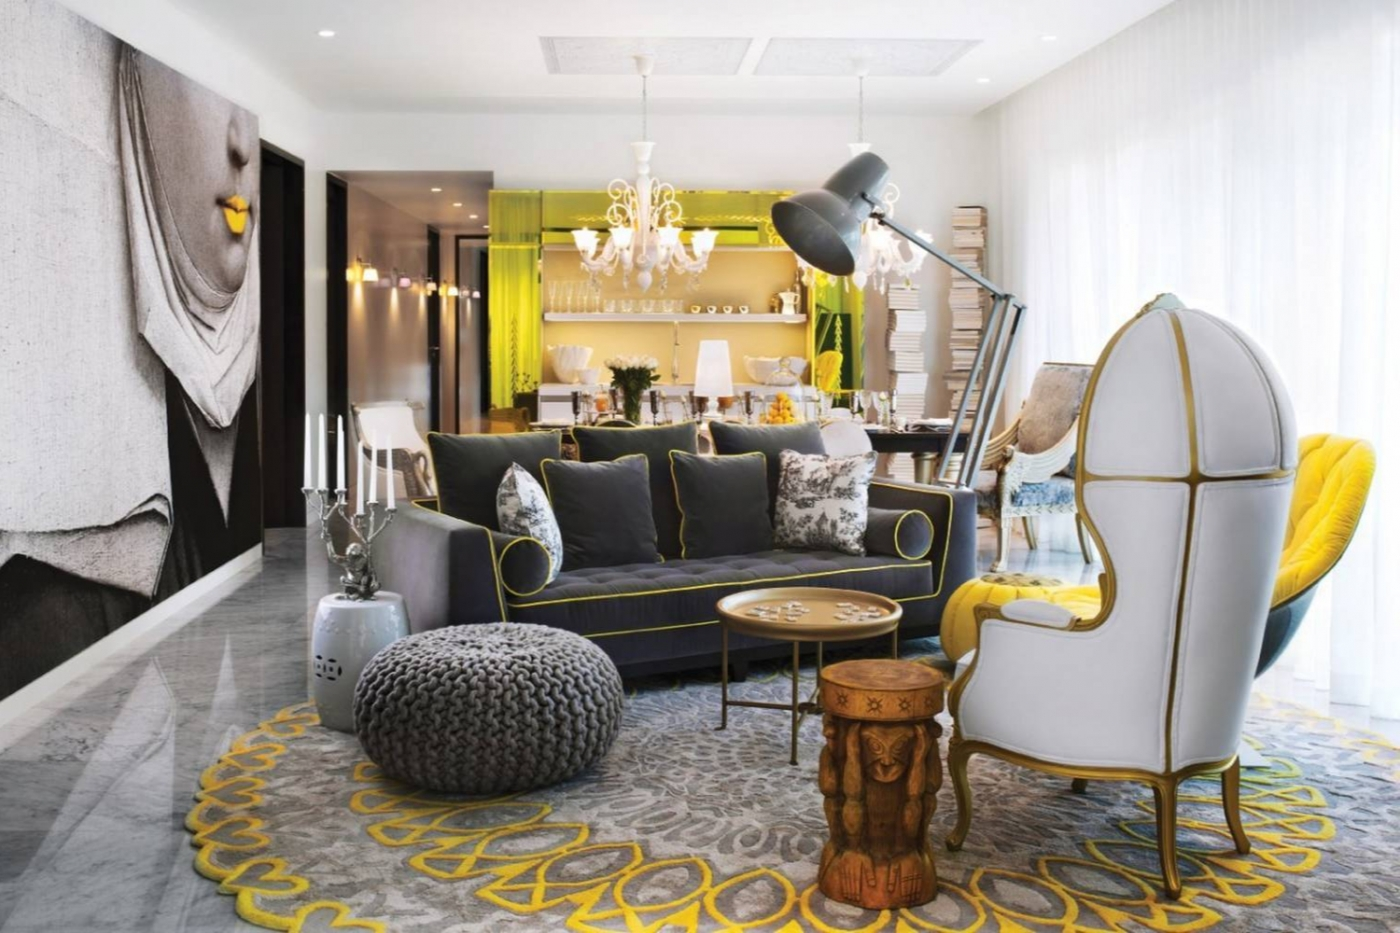 best interior designers Get Inspired By The 10 French Best Interior Designers Get Inspired By The 10 French Best Interior Designers featured 1400x933